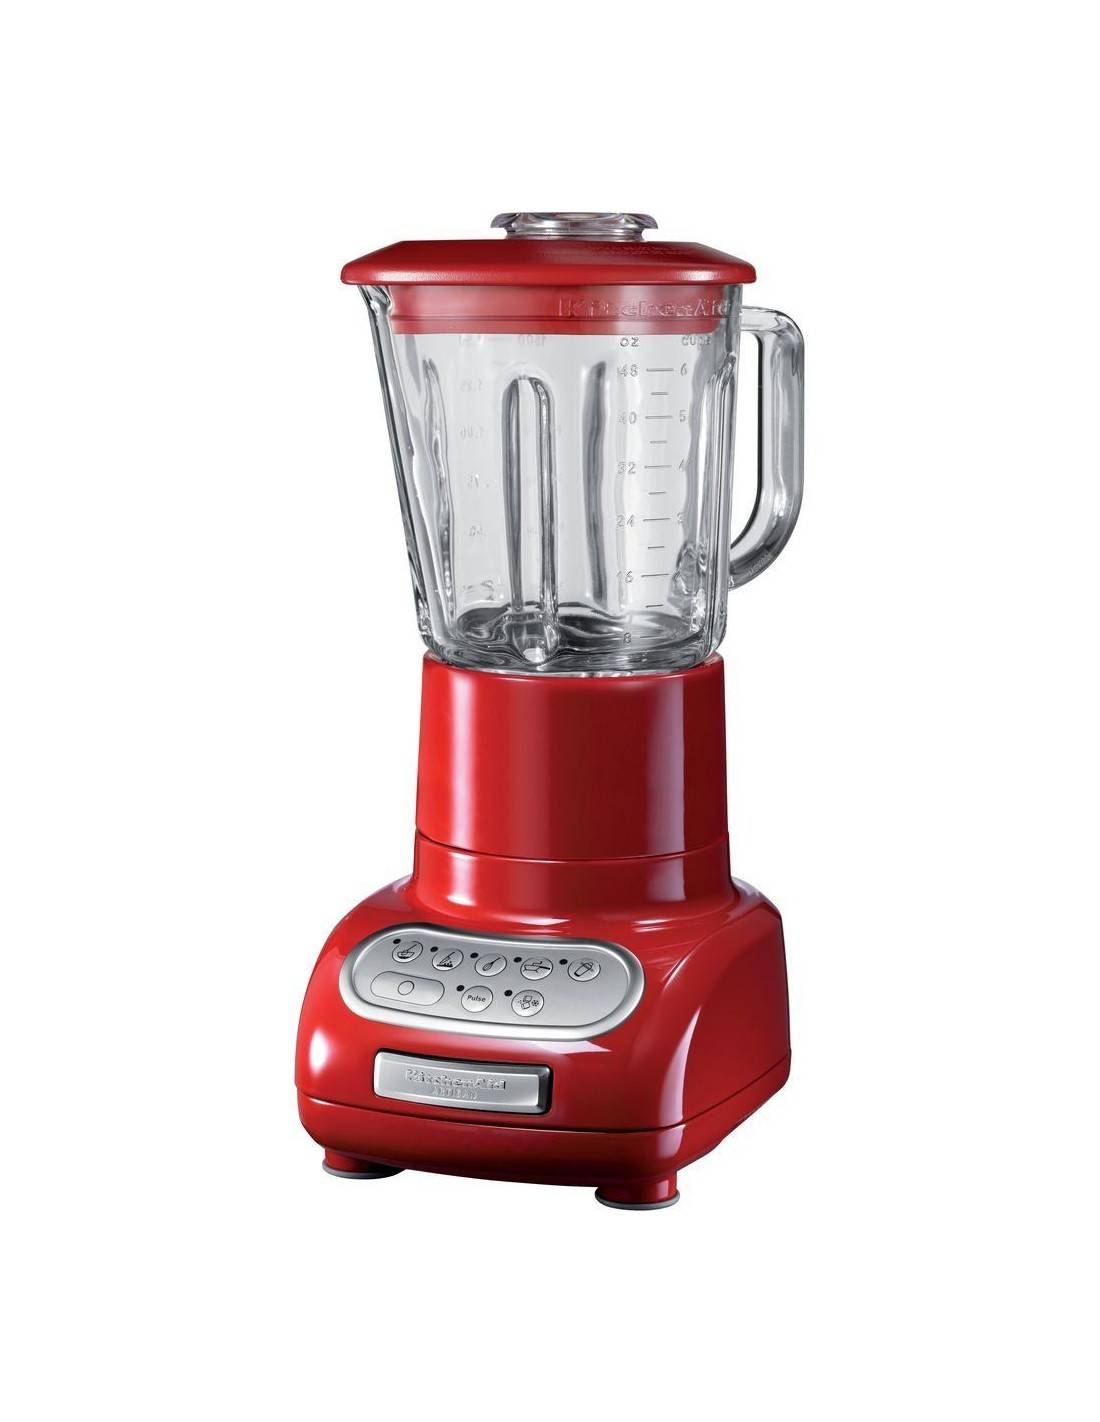 Kitchenaid Artisan Red Blender Mimocook Online Store